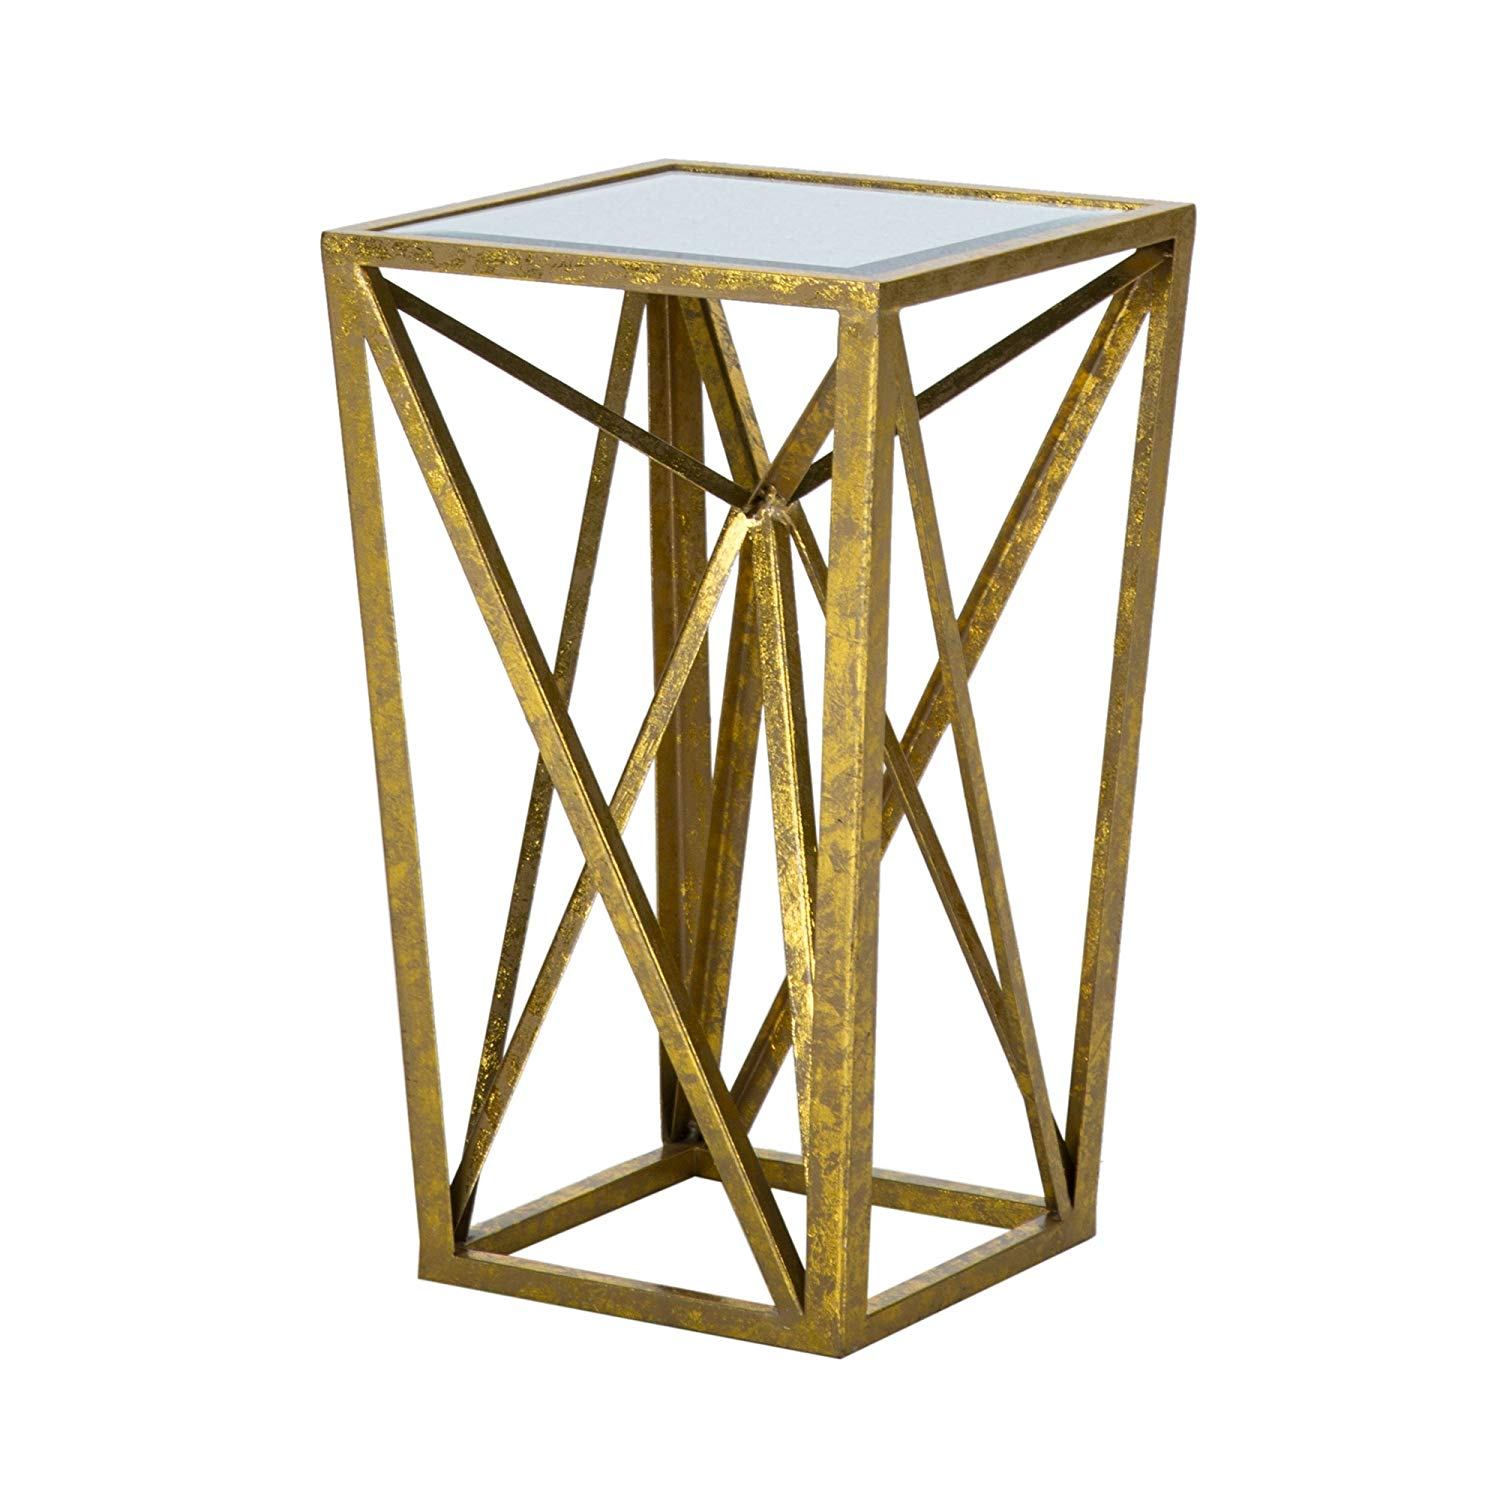 madison park zee accent tables mirror glass metal mirrored cube table side gold angular design modern style end piece top hollow round classic contemporary furniture lamps with